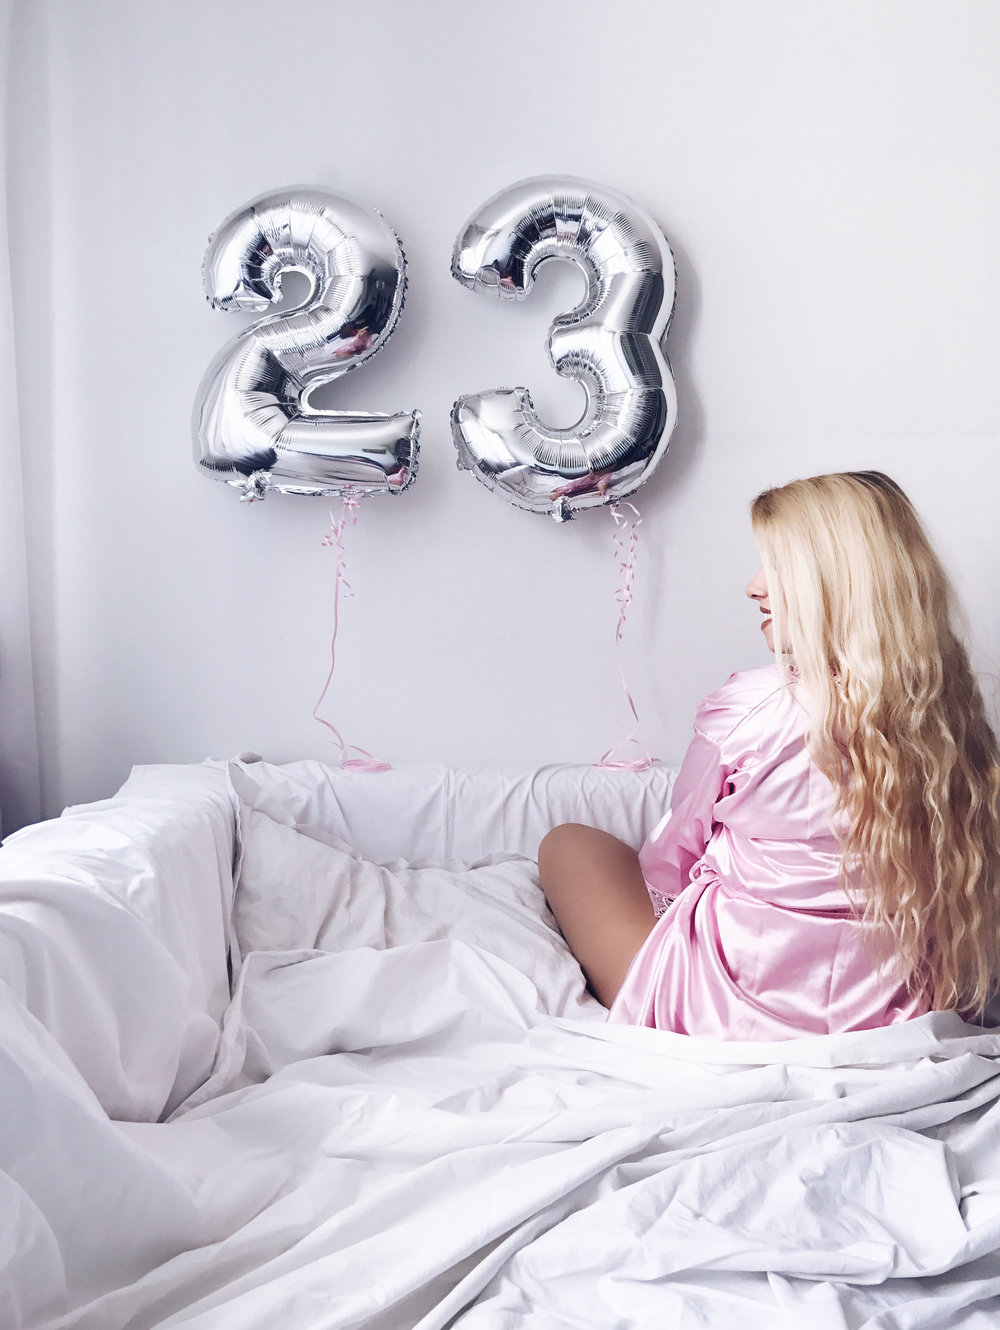 birthday present presents balloon balloons bday girl blog blogger blonde hair hairstyle beachwaves 23rd birthday fashion style clothes